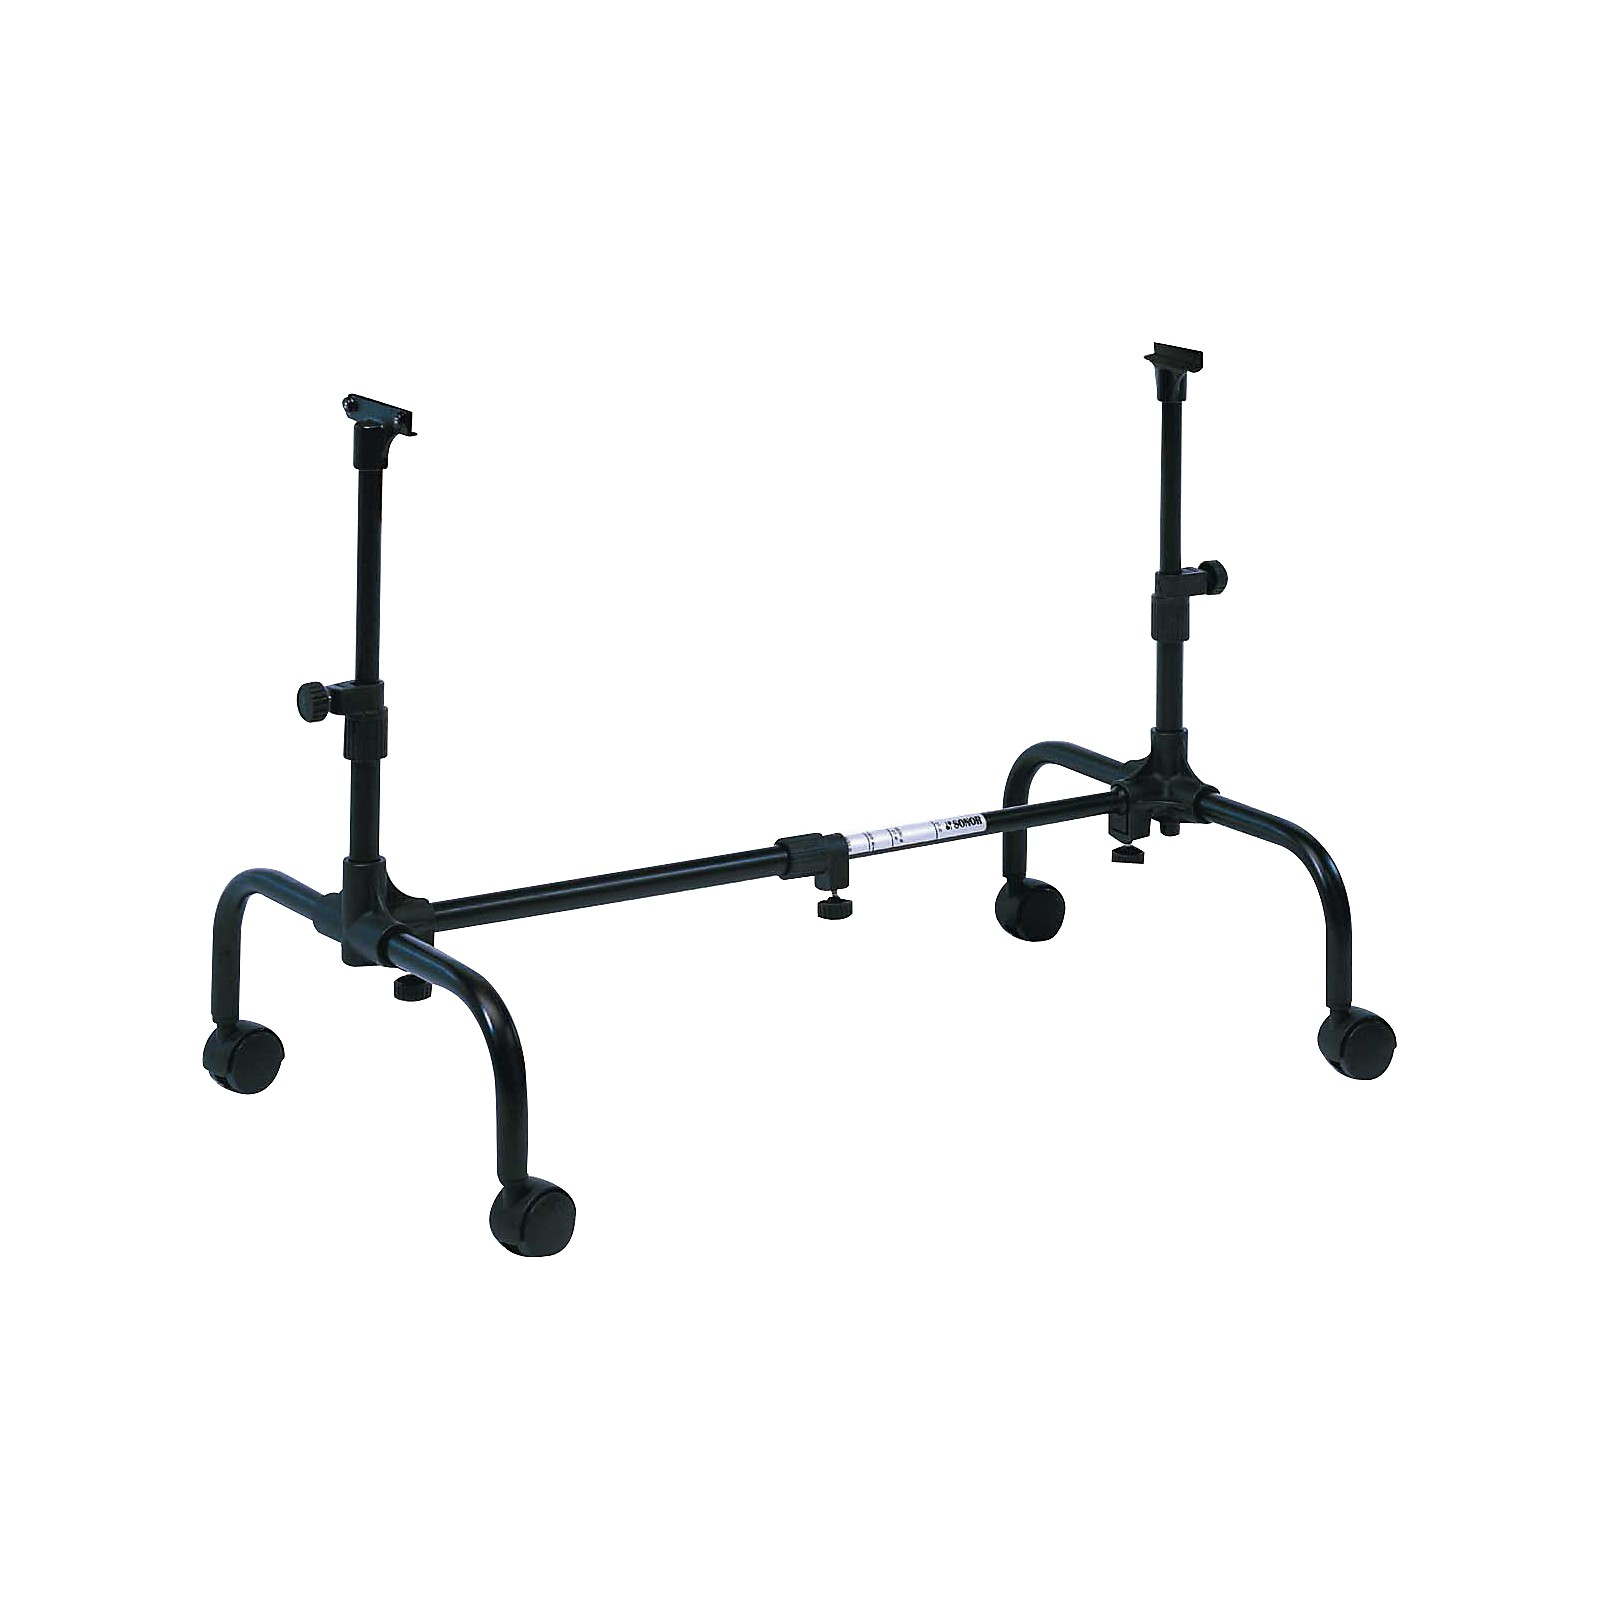 Sonor Orff BT BasisTrolley Universal Orff Instrument Stand Adapters